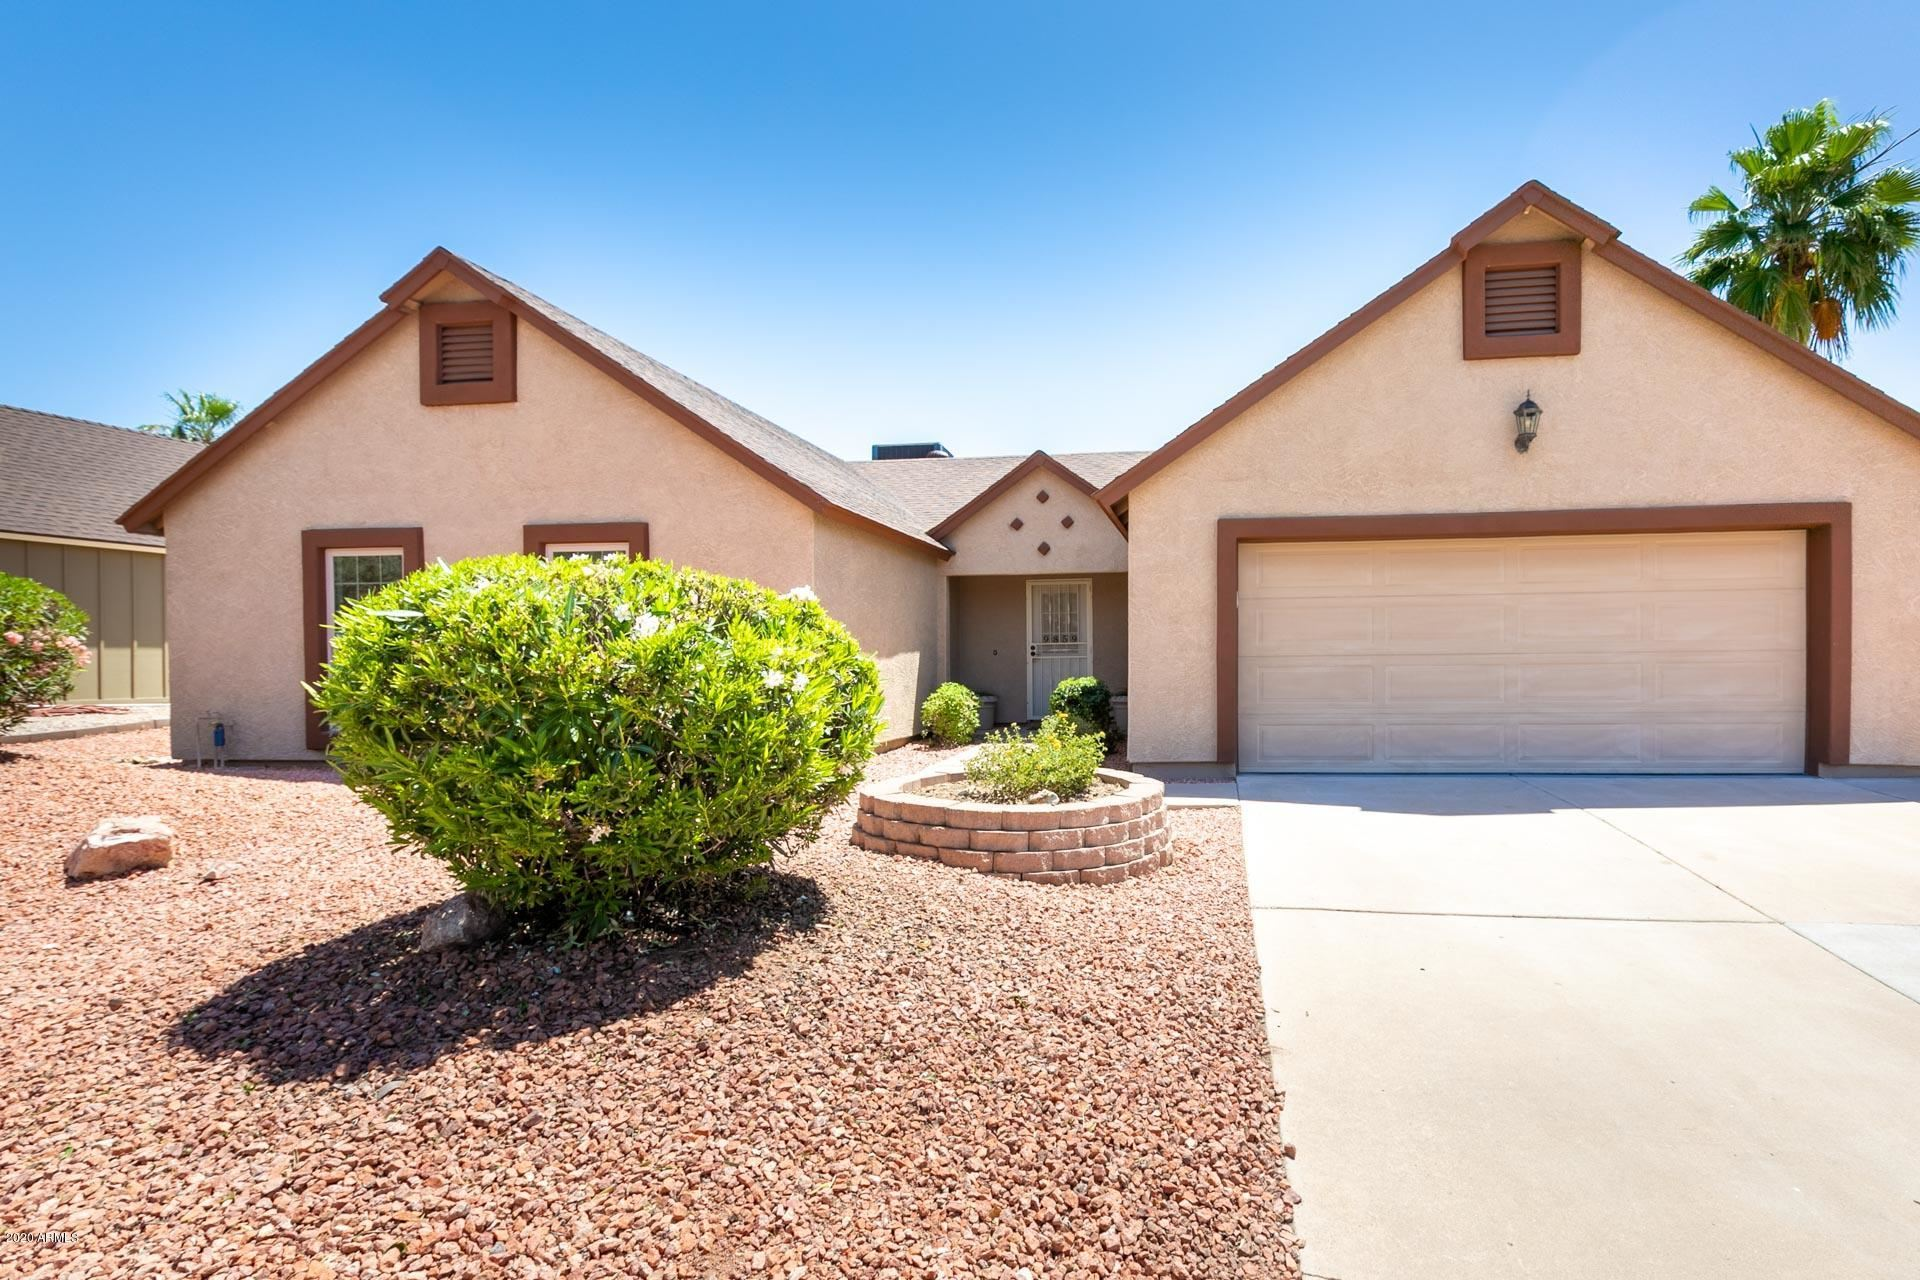 9859 S 47TH Street, Phoenix, AZ 85044 - MLS#: 6076573